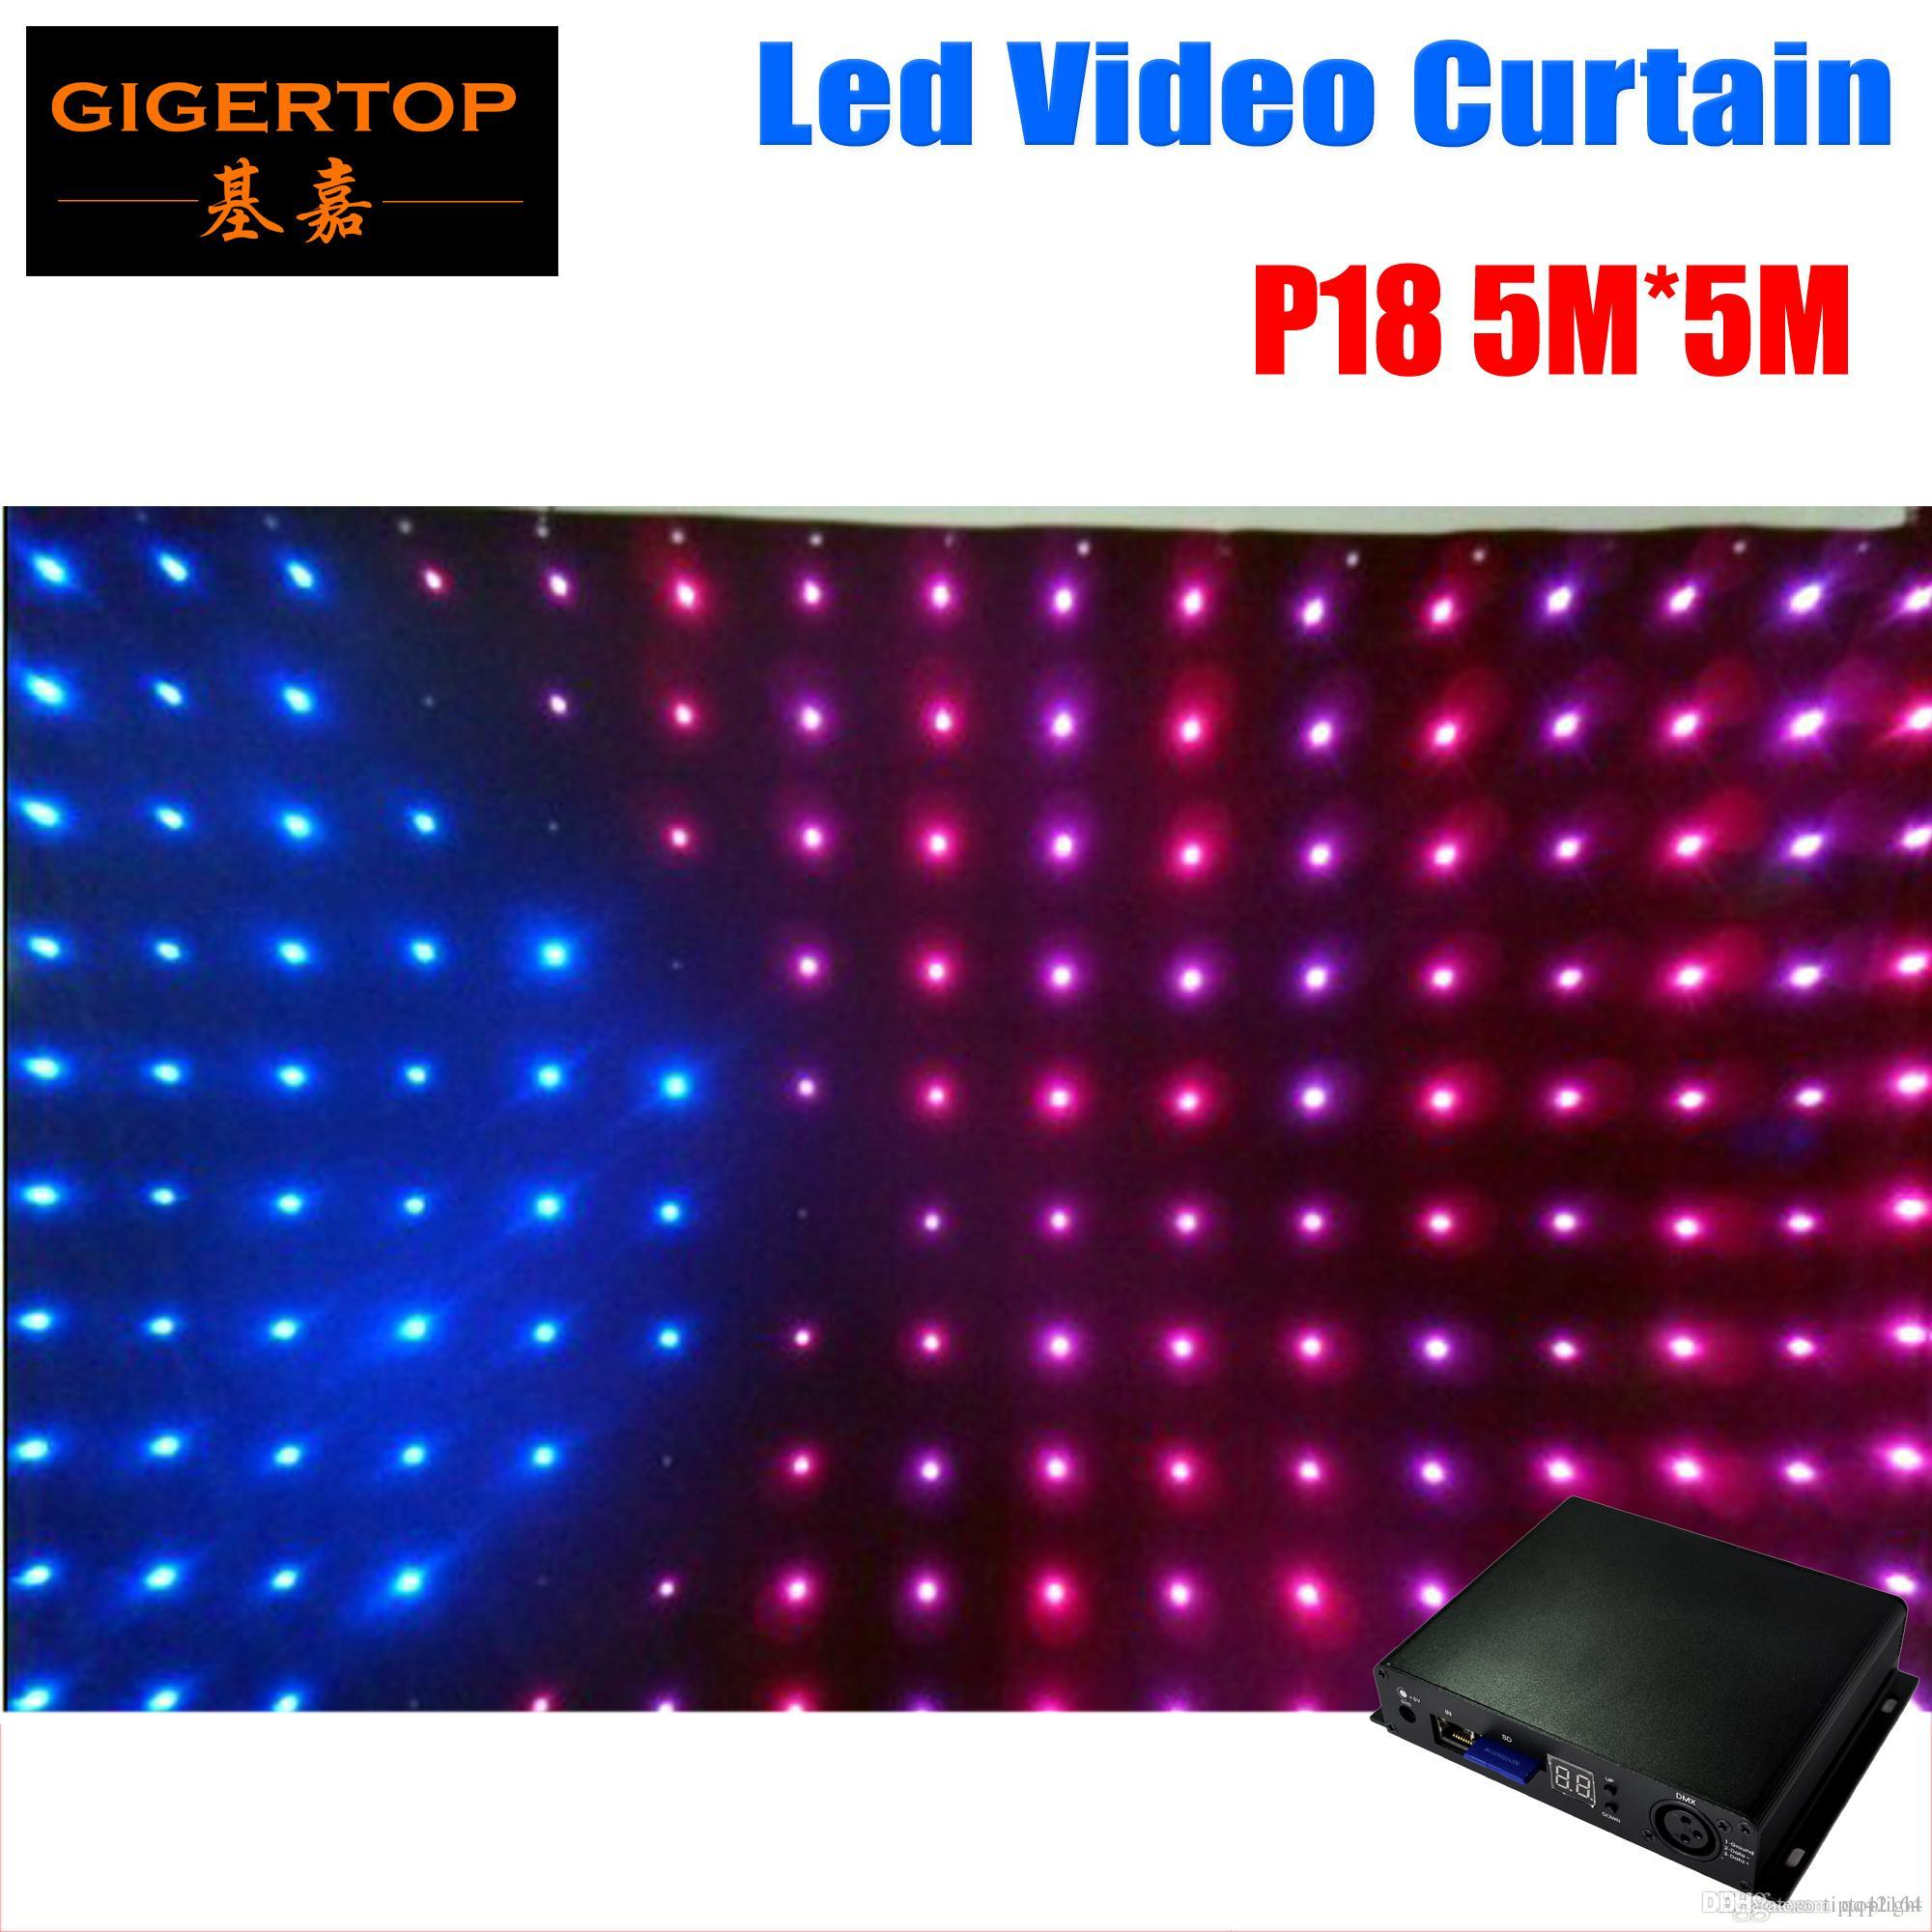 P18p19p20 To Choose 5m5m Led Graphic Curtain Fire Proof With 50